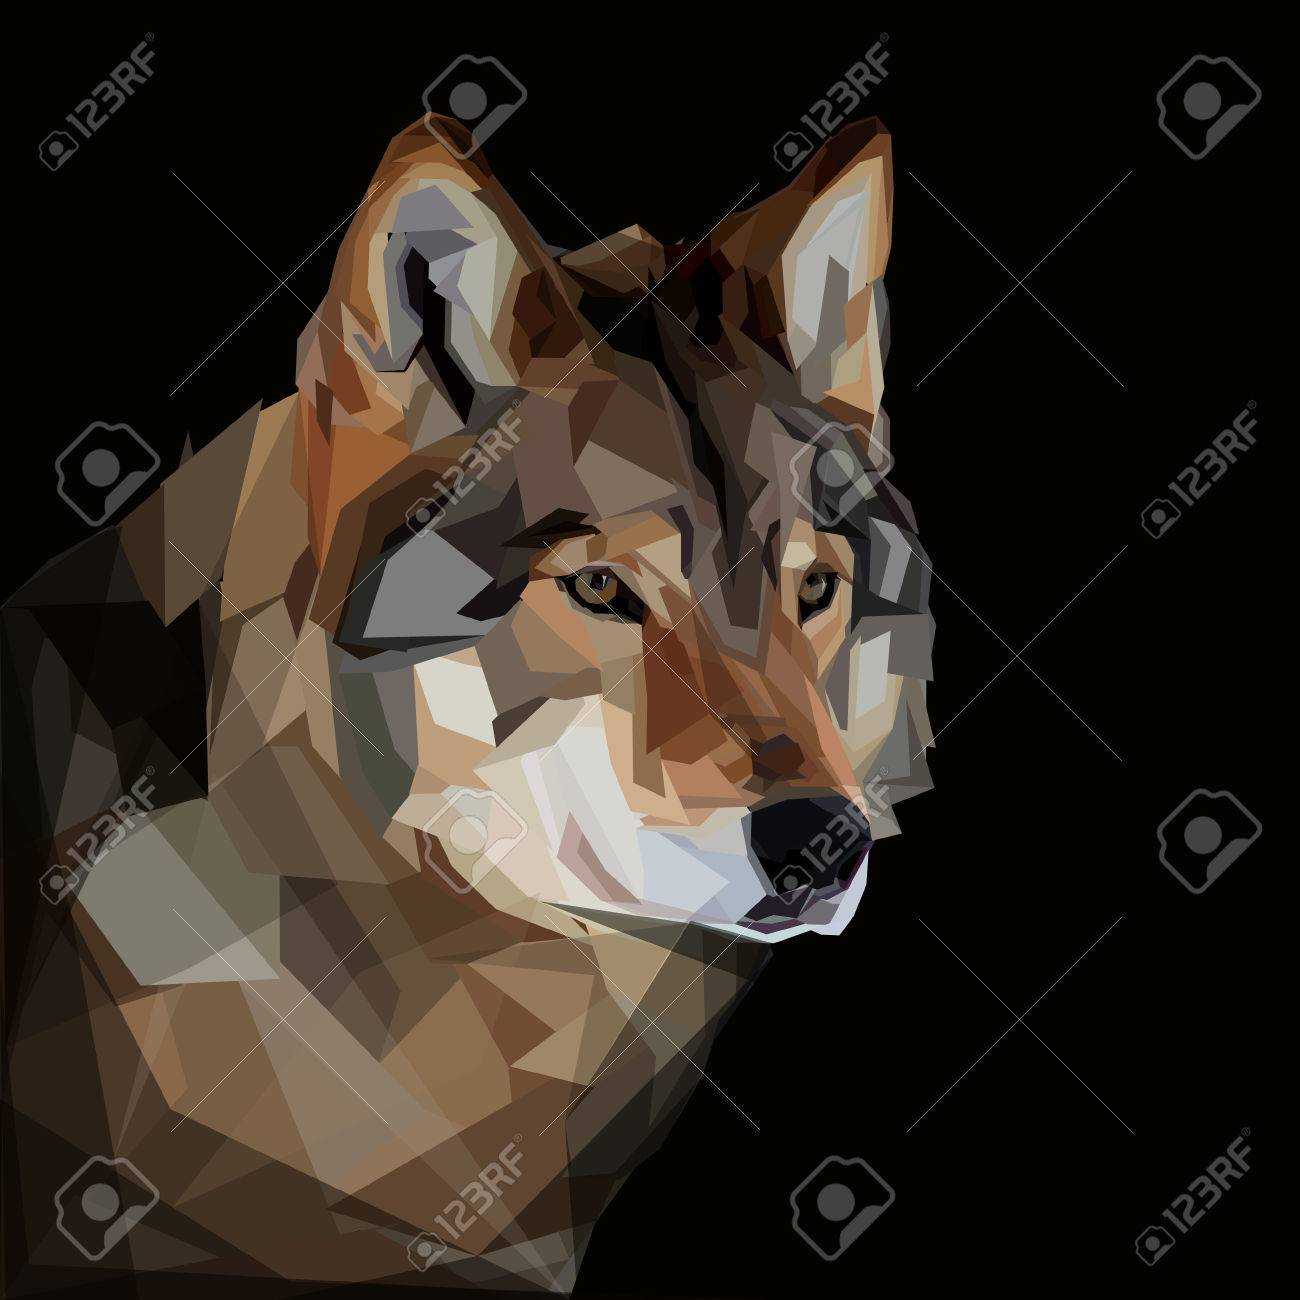 Cool Timber Wolf Head On Dark Background Royalty Free Cliparts Vectors And Stock Illustration Image 48676295